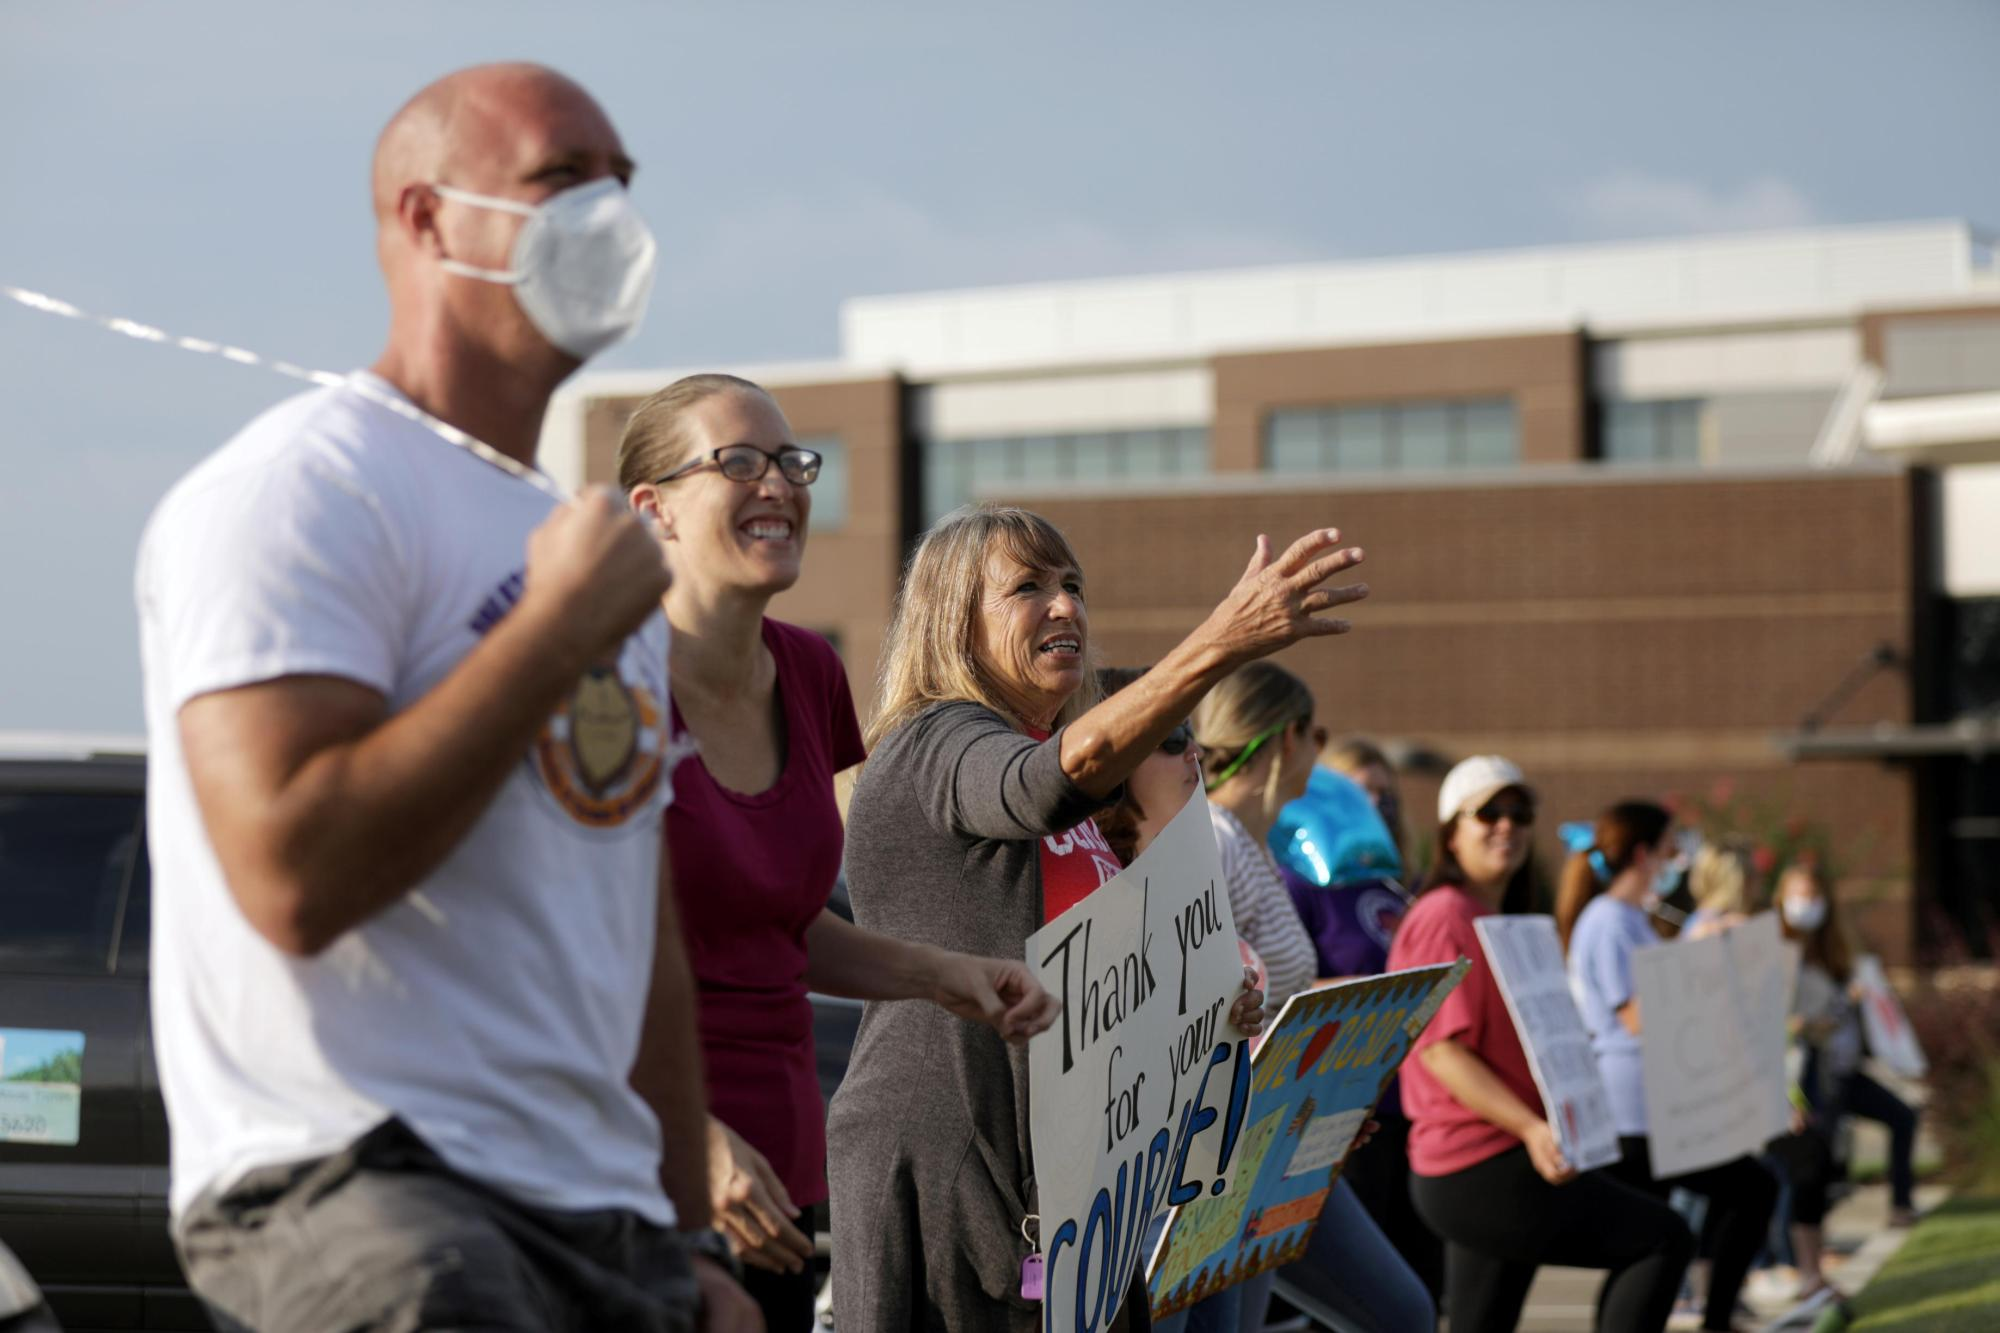 Supporters of the Cherokee County School District's decision to reopen schools cheer on faculty arriving to the district's headquarters in Canton, Georgia. (Dustin Chambers/Reuters)